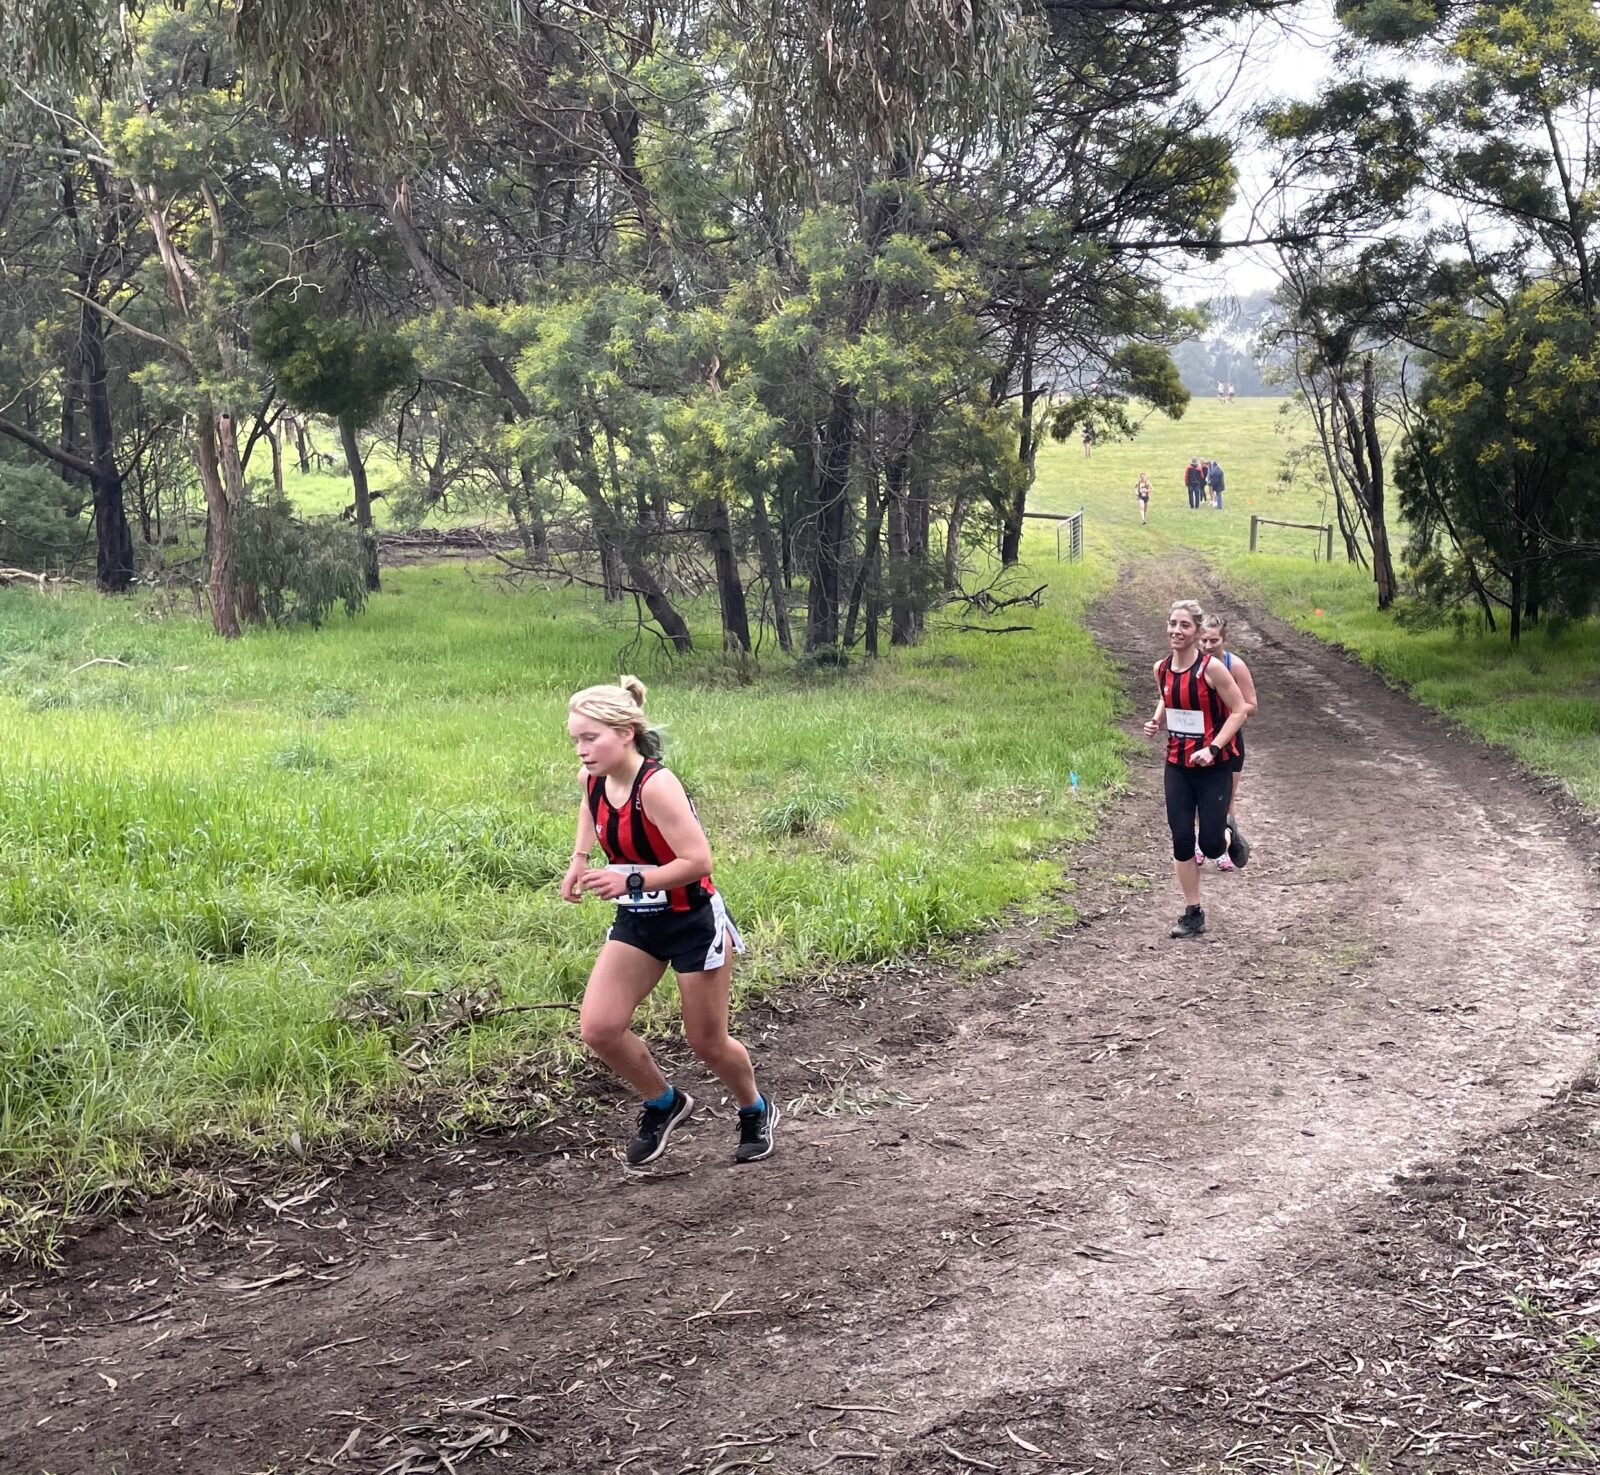 Runners at Cross Country Race